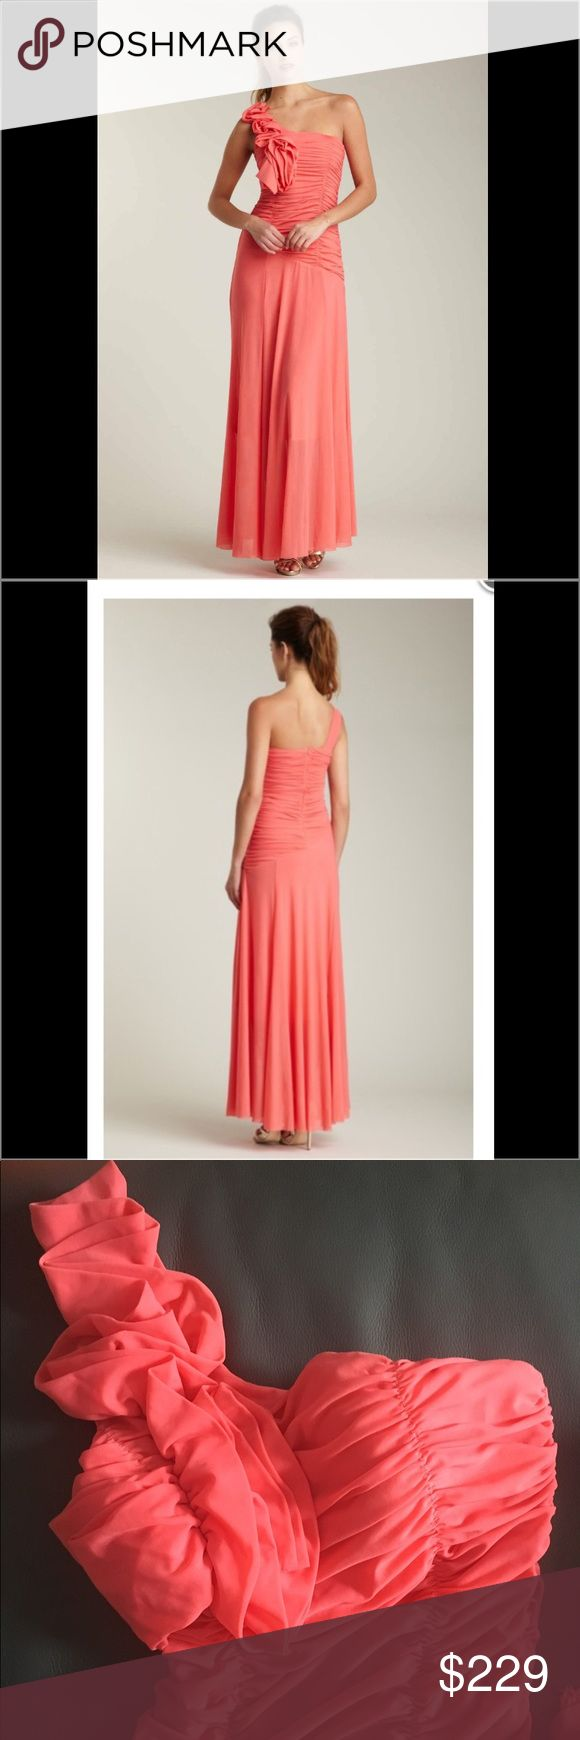 Romeo & Juliet Couture One Shoulder Coral Gown Romeo & Juliet Gown One shoulder ruched waist Shoulder designer  Size Small Worn once for College graduation Romeo & Juliet Couture Dresses One Shoulder